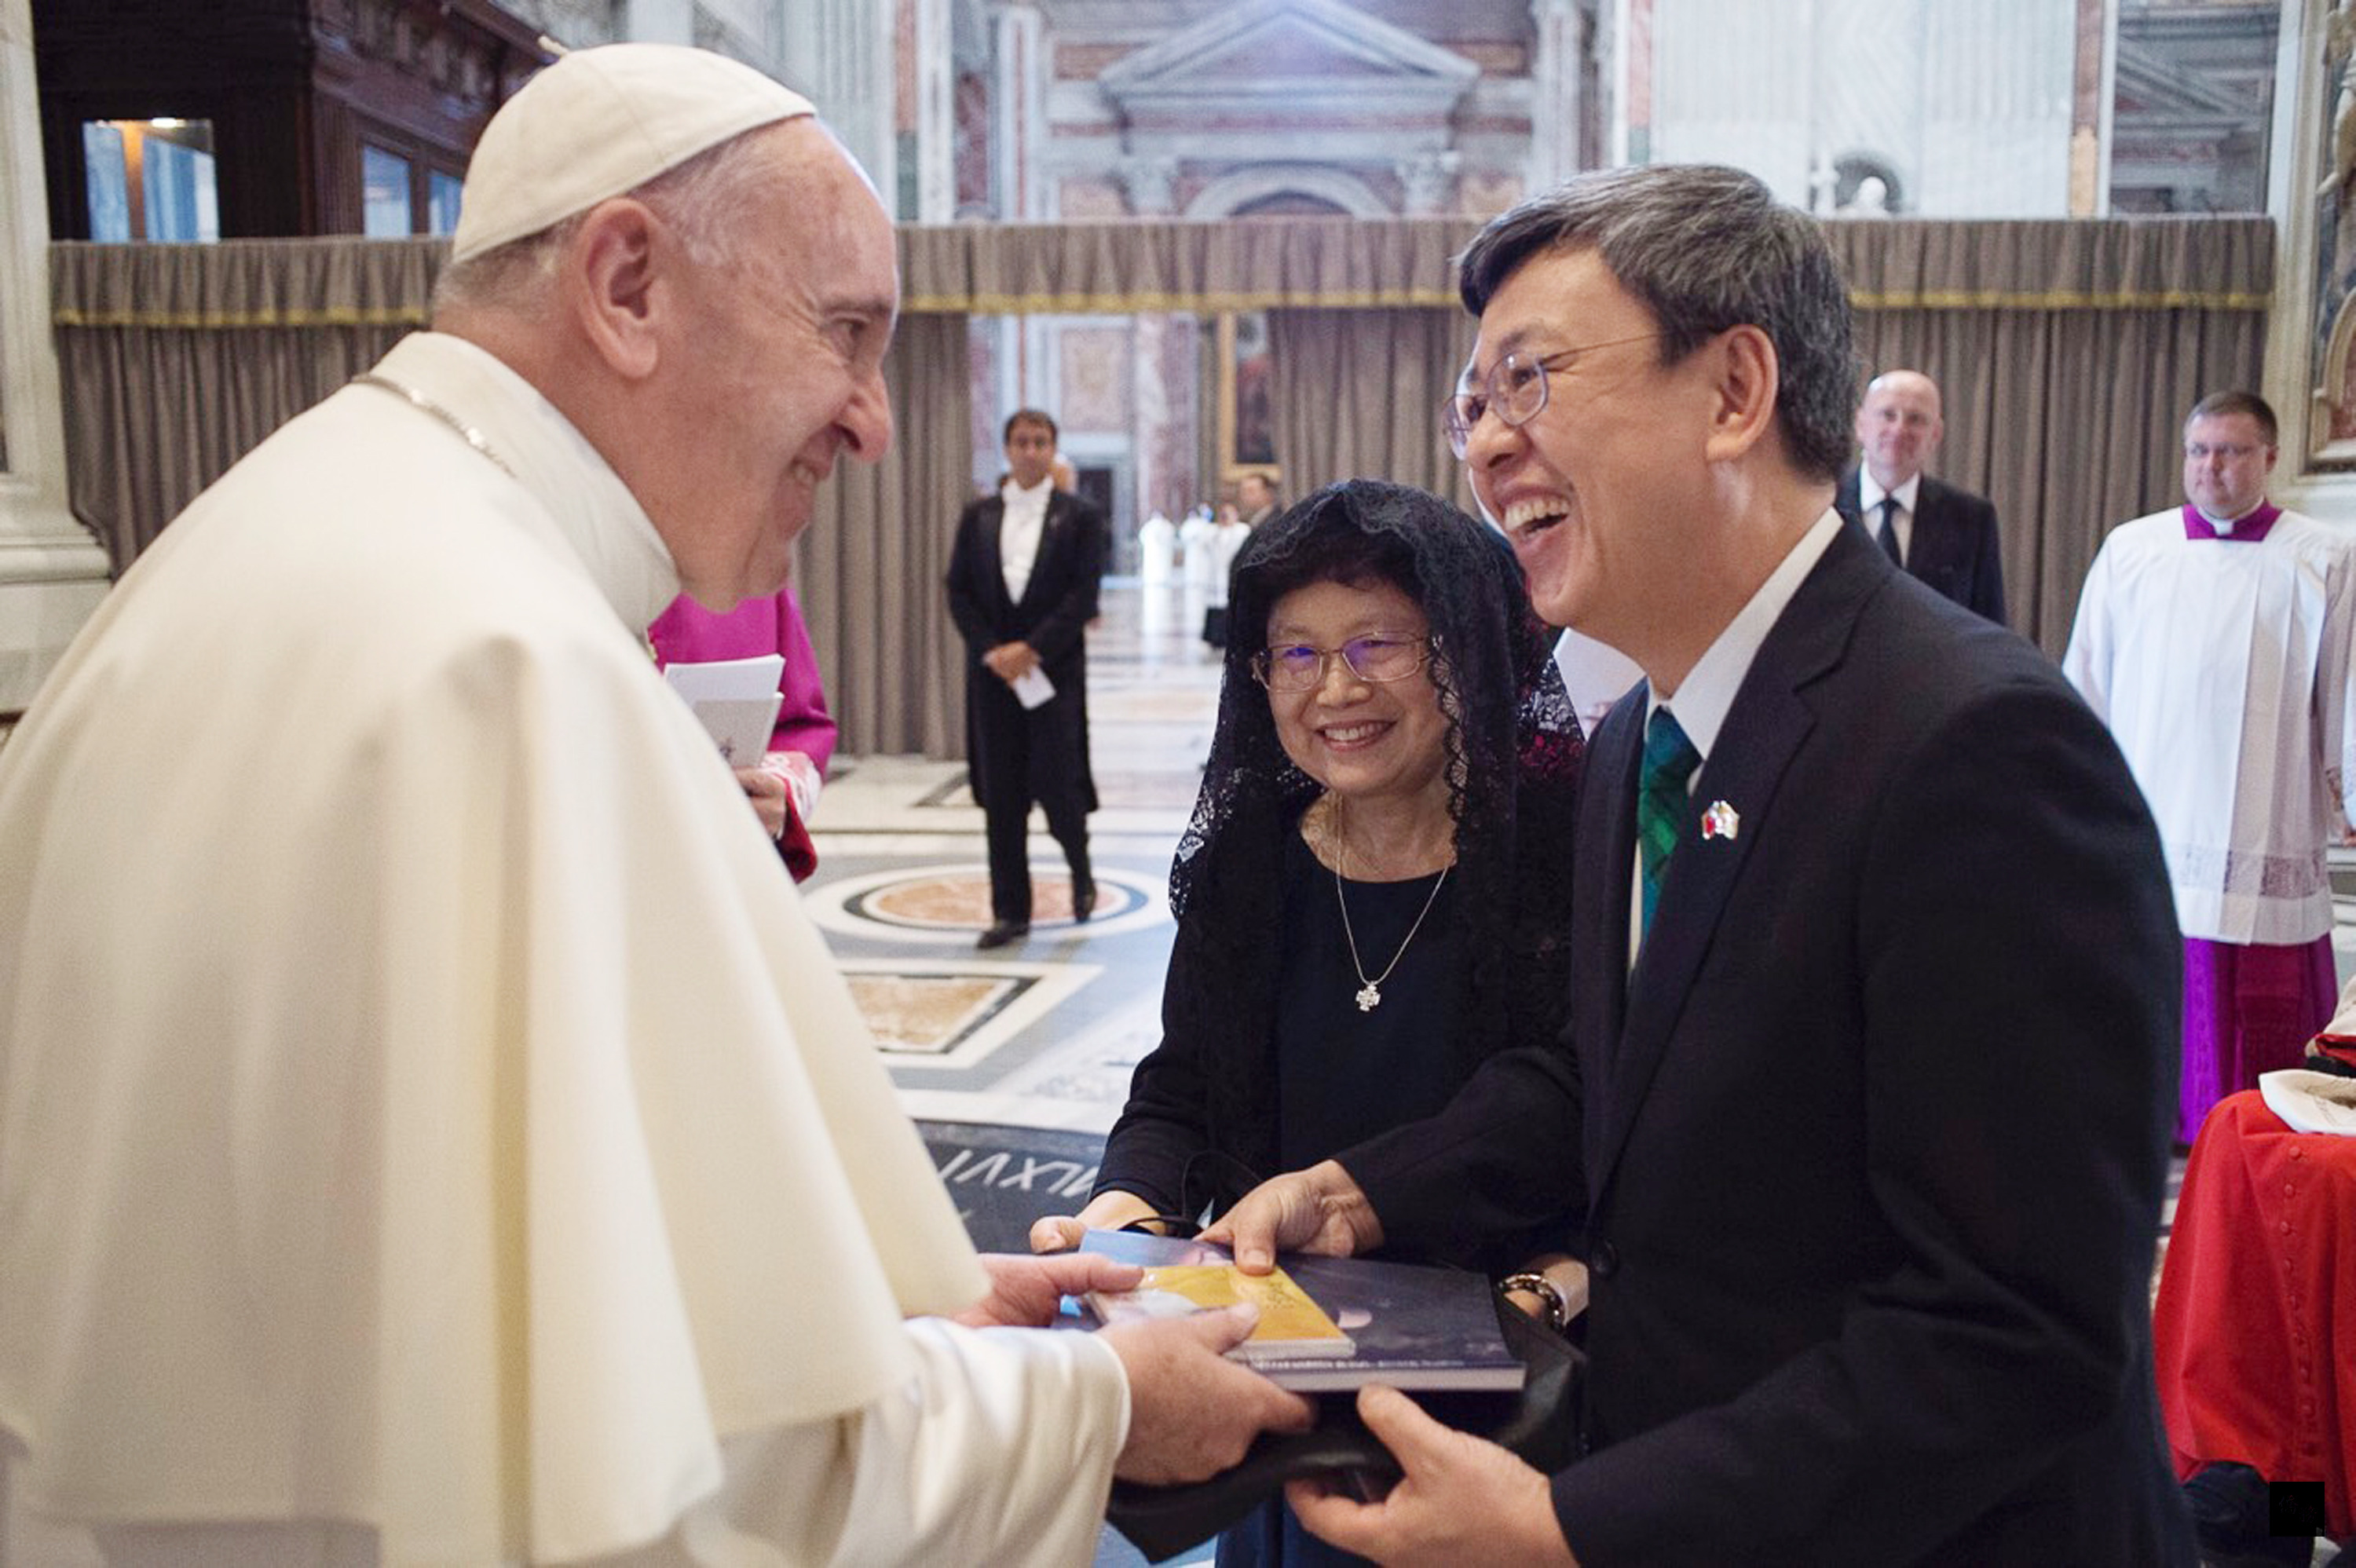 Vice President Chen Chien-jen (right) with Pope Francis at the Vatican in 2016.